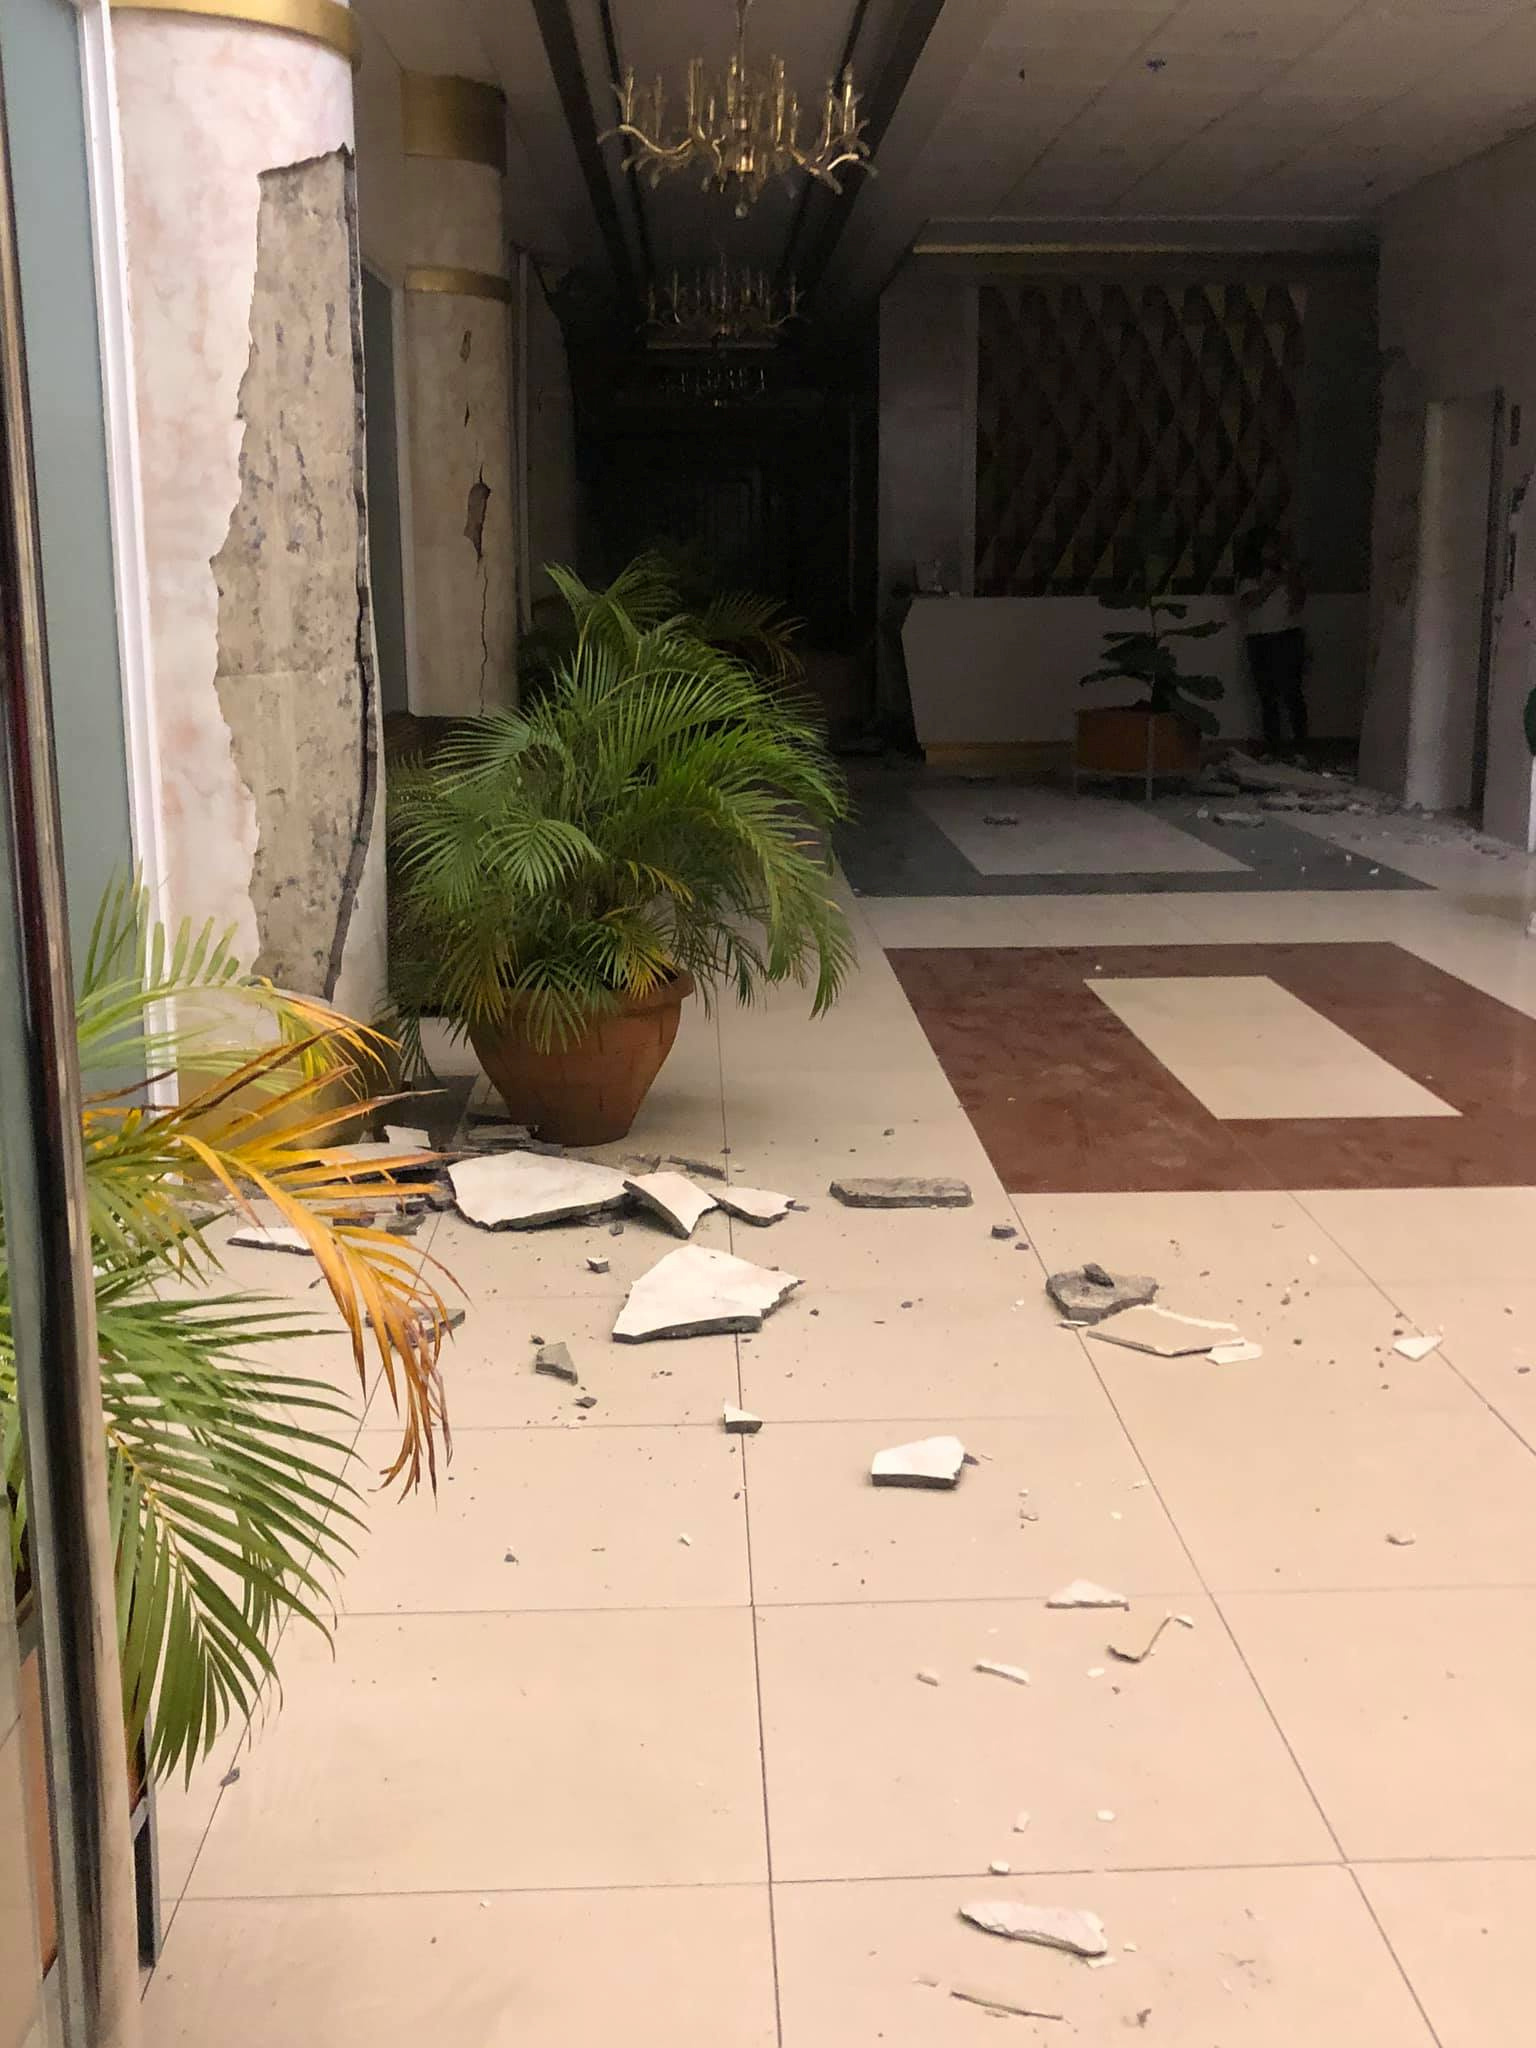 Rubble is seen on a floor of a hotel in the aftermath of an earthquake in Kidapawan City, Philippines October 16, 2019 in this picture obtained from social media. NARU GUARDA CABADDU/via REU